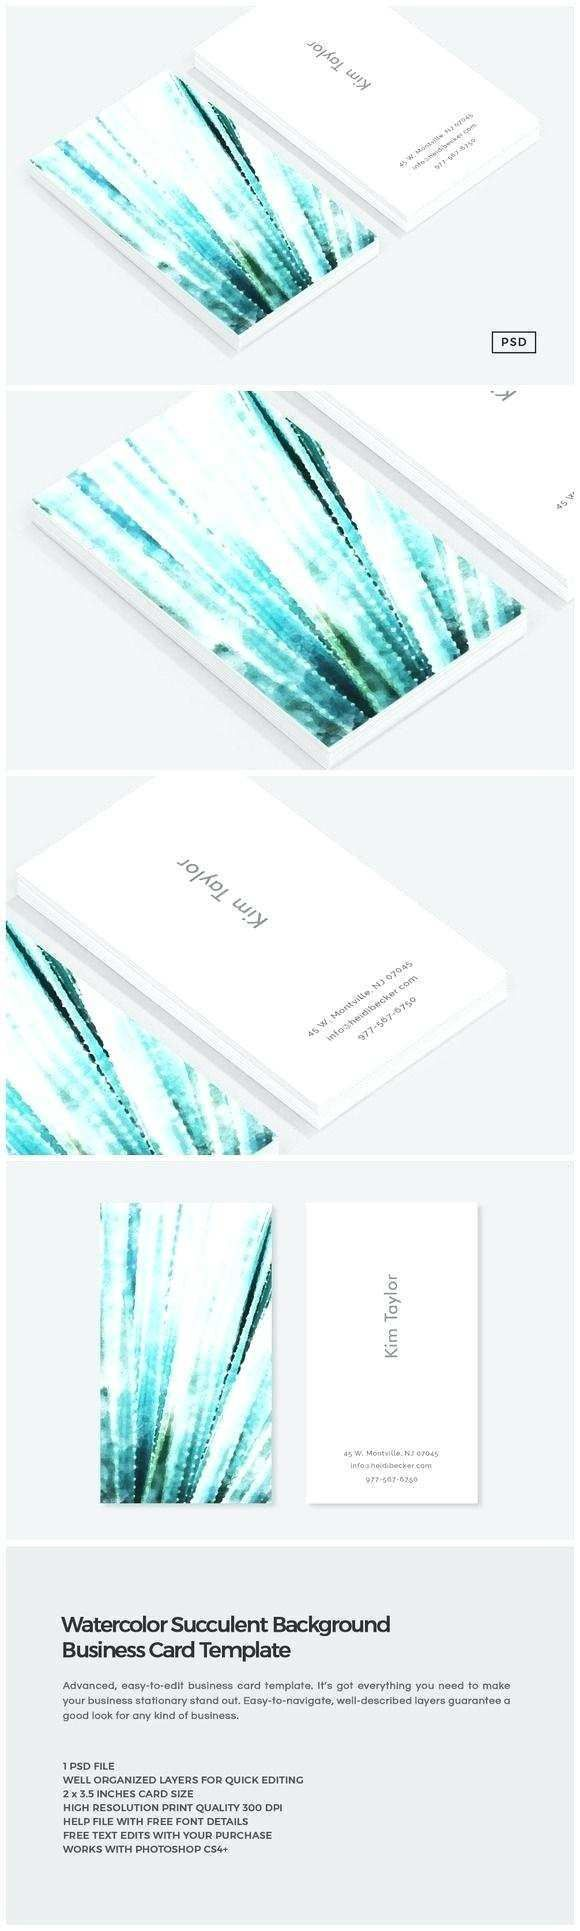 61 Format Recipe Card Template Free Open Office In Photoshop Regarding Business In 2020 Business Cards Watercolor Watercolor Business Cards Photography Business Cards